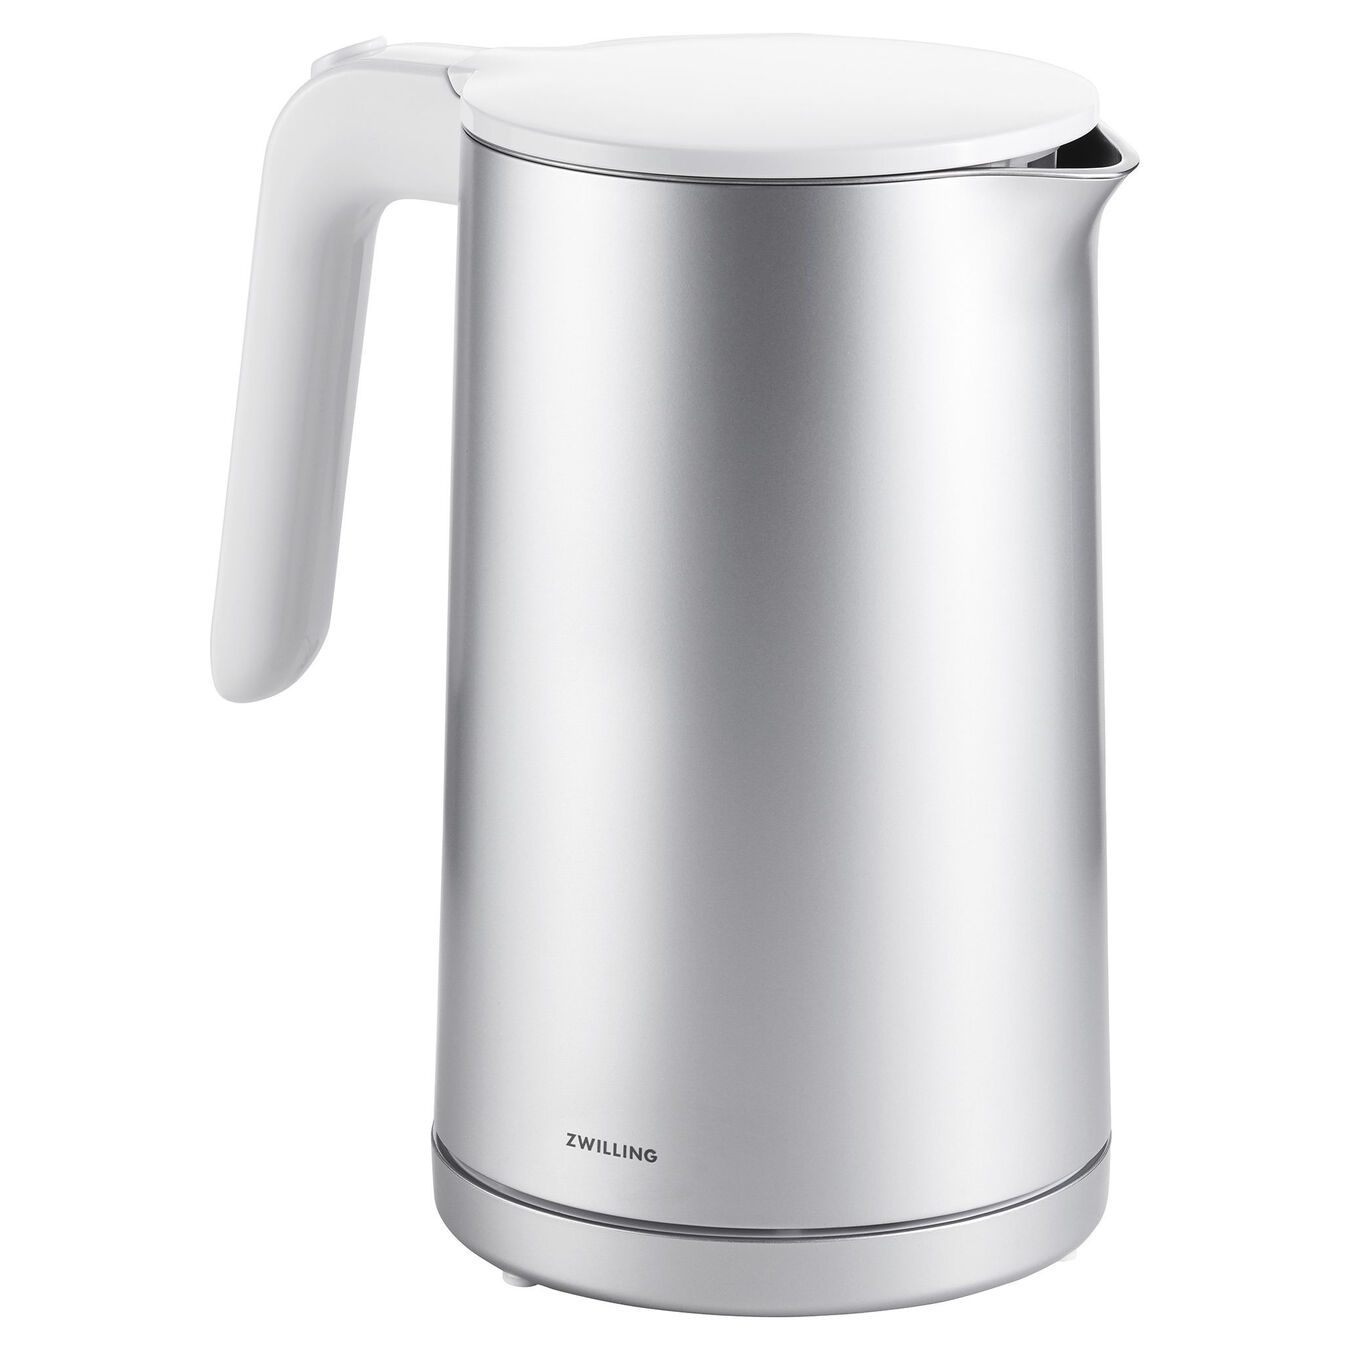 Henckels Zwilling Enfinigy Electric Kettle